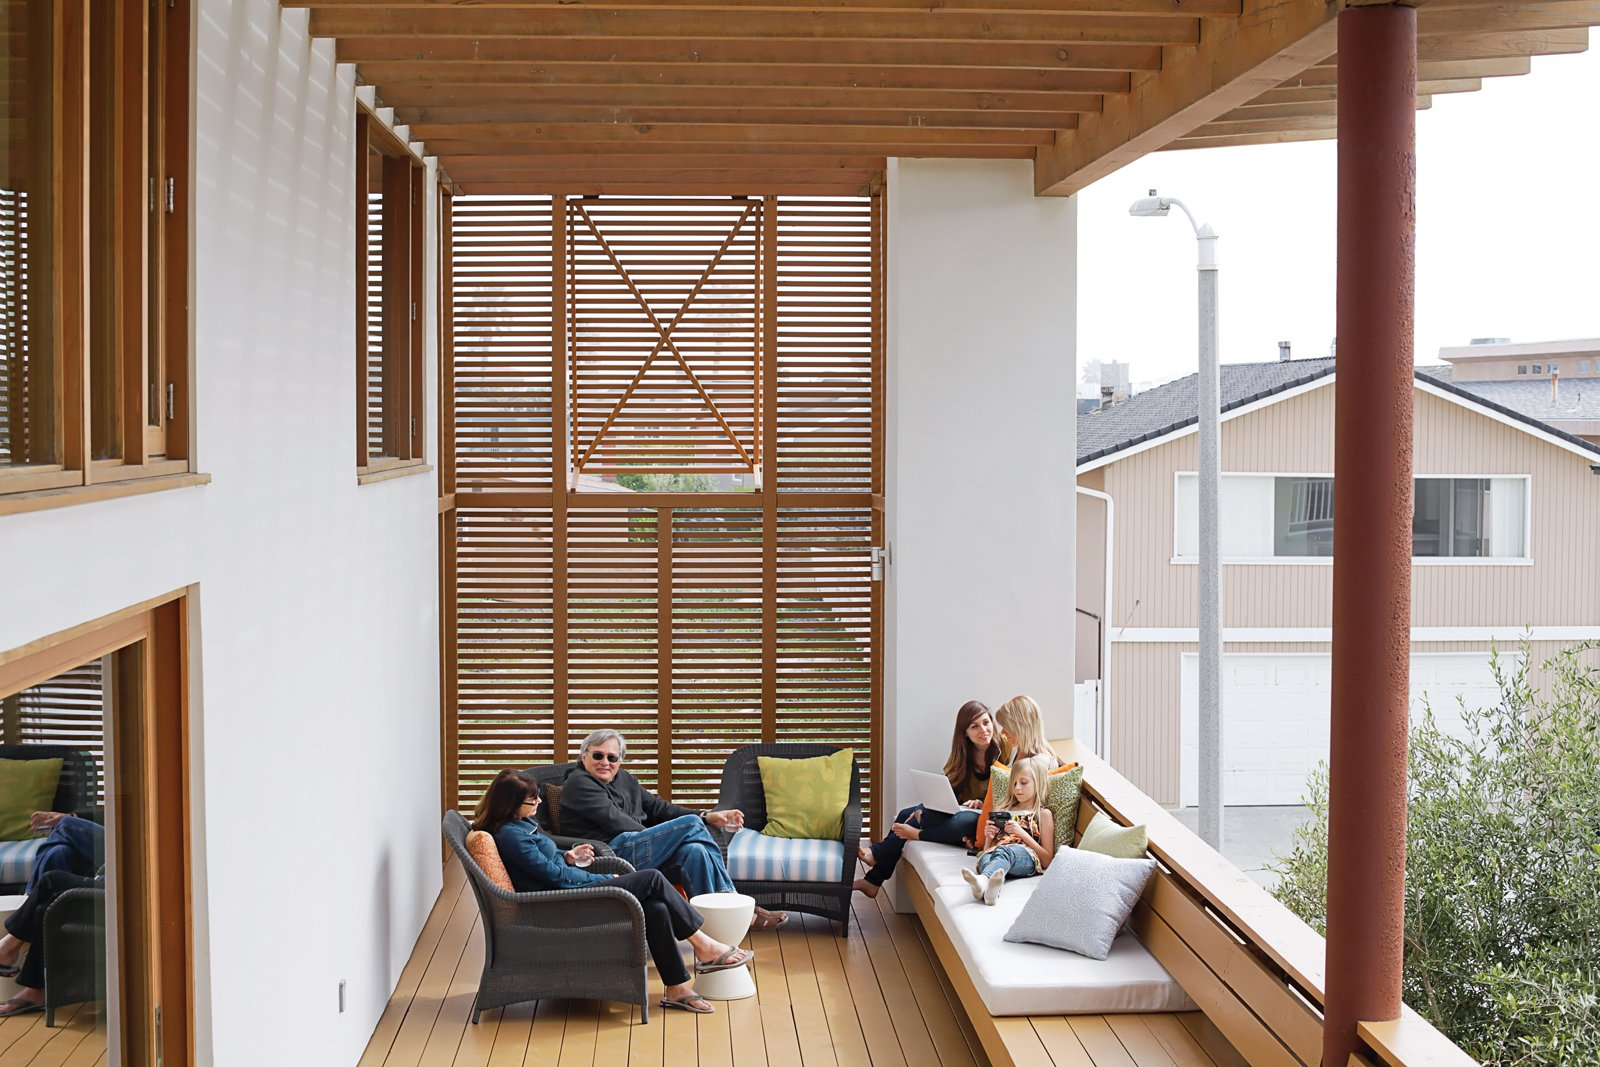 Cedar louvers increase privacy and shade on the second-floor deck, where Carole and Duane relax with granddaughters Natalie and Allison and their friend Katherine. Tagged: Outdoor, Small Patio, Porch, Deck, and Wood Patio, Porch, Deck. Coast Docs - Photo 5 of 13